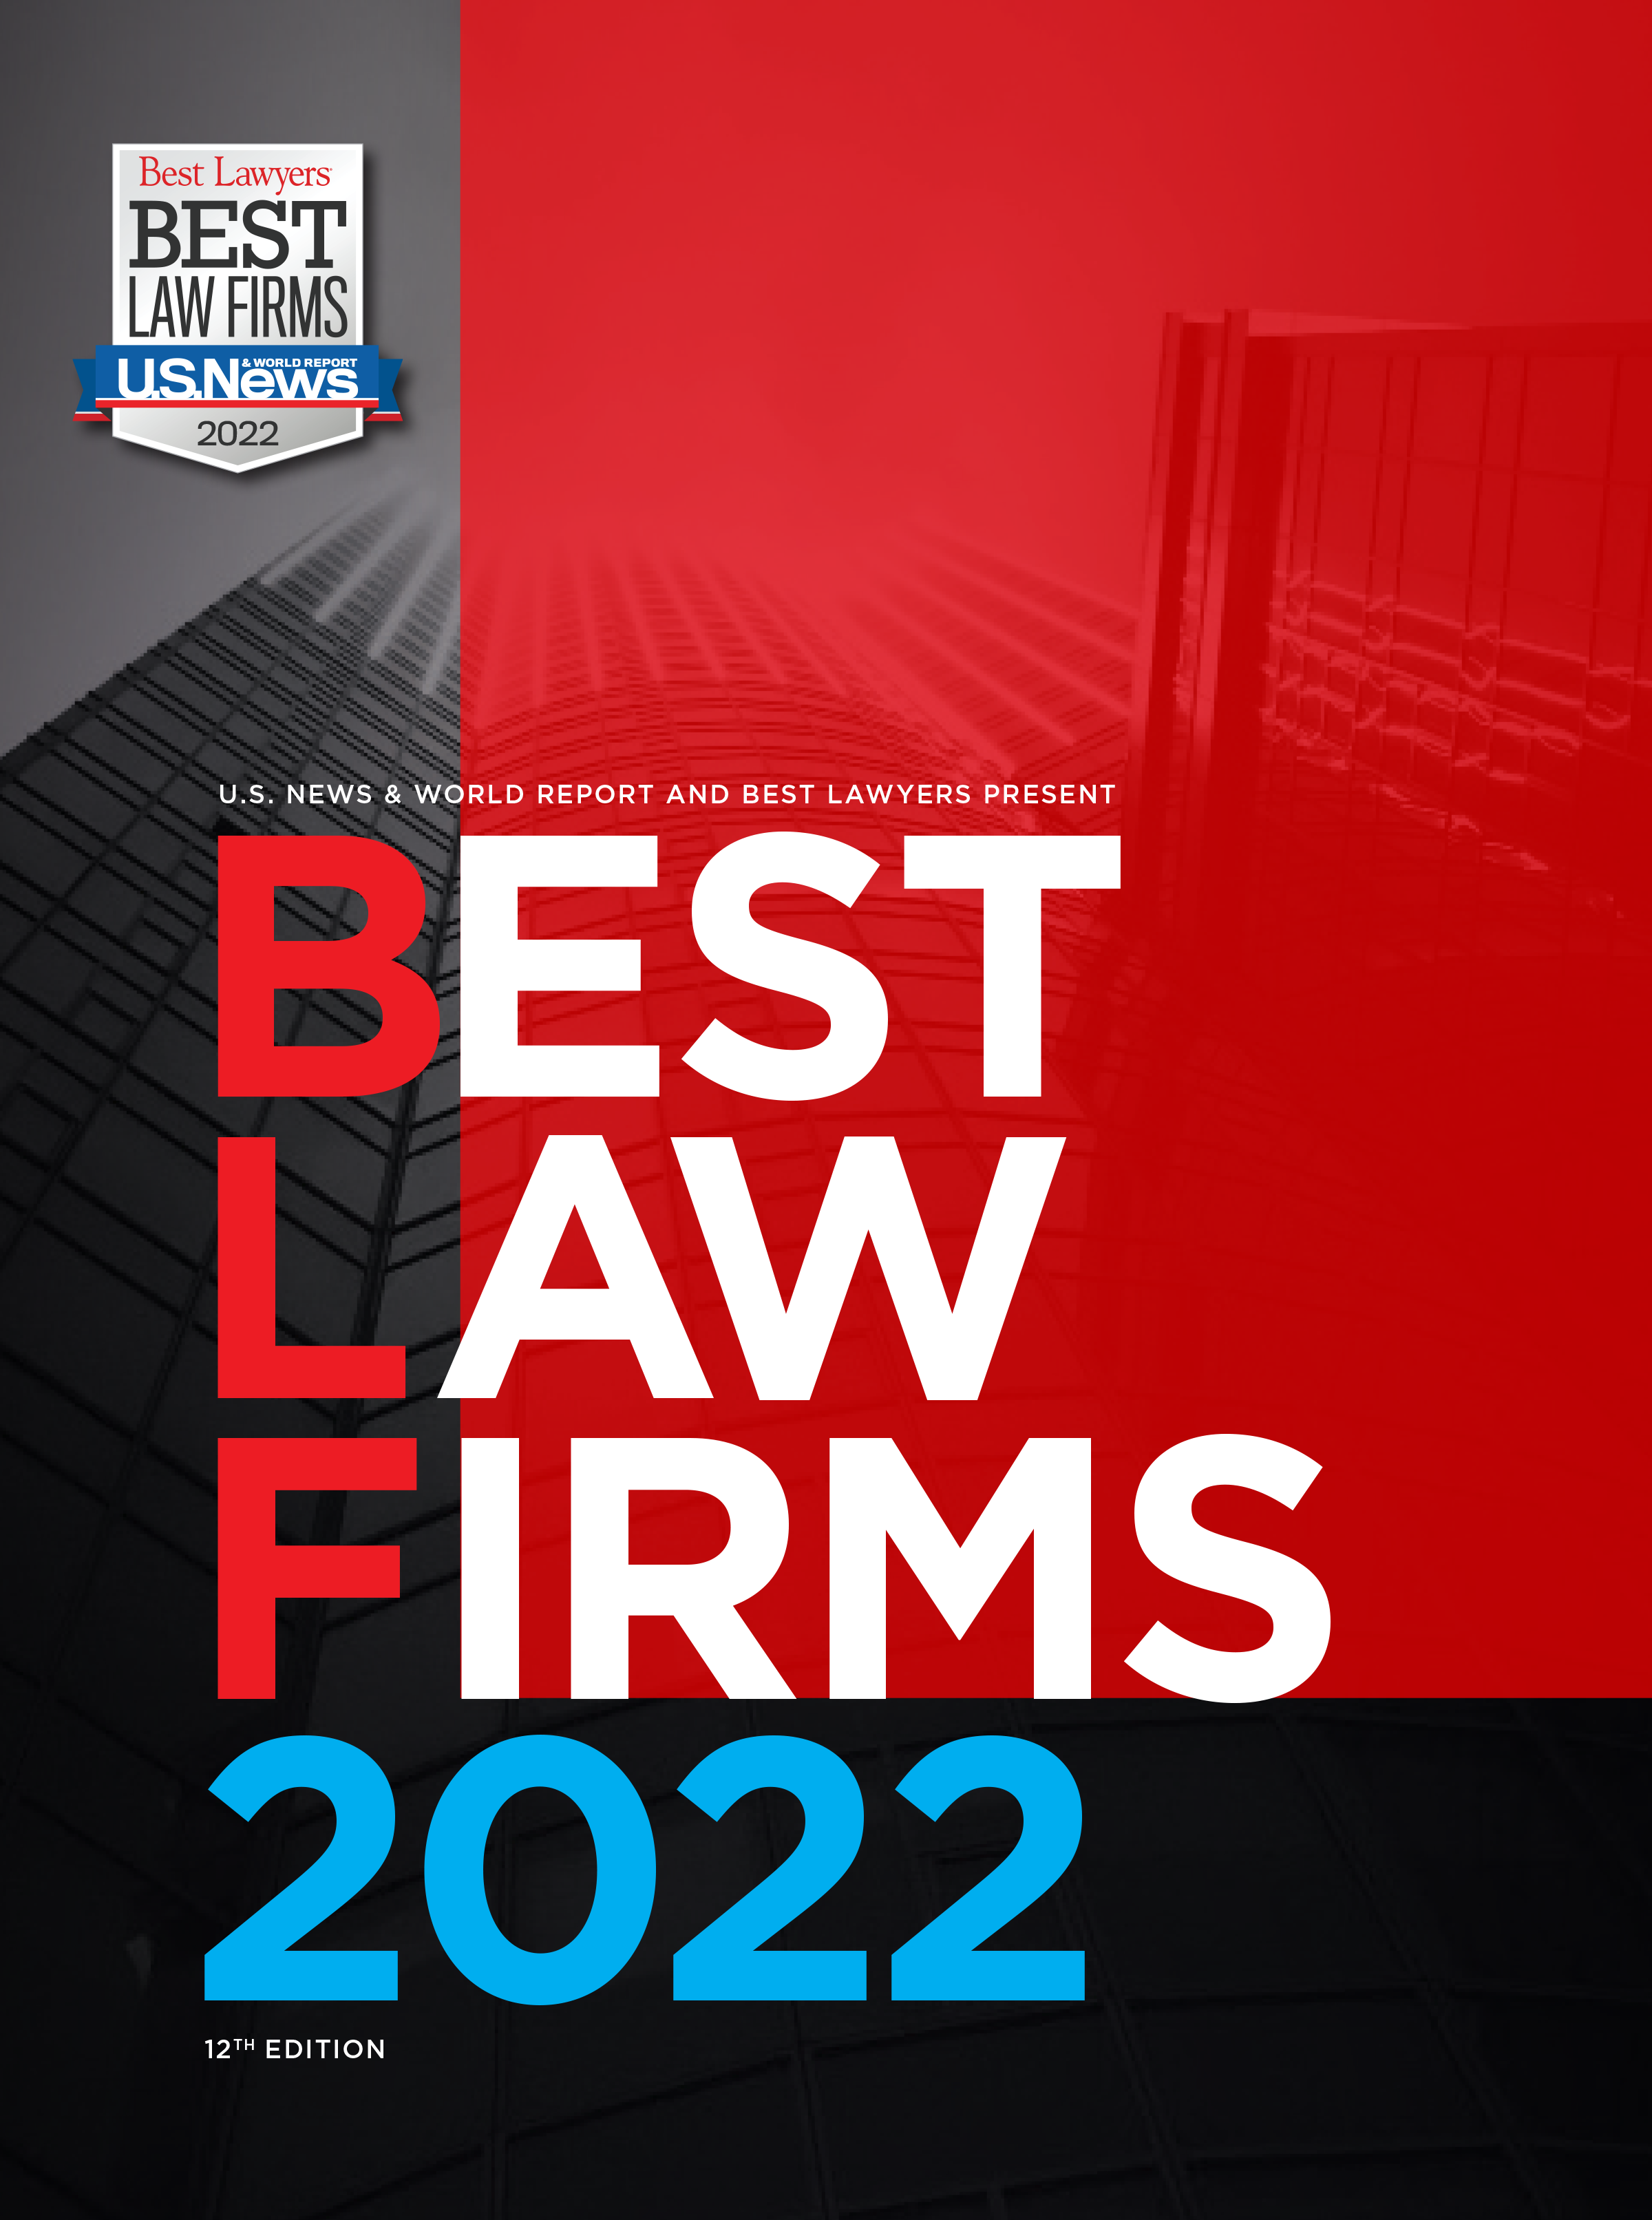 Cover for our Best Law Firms publication